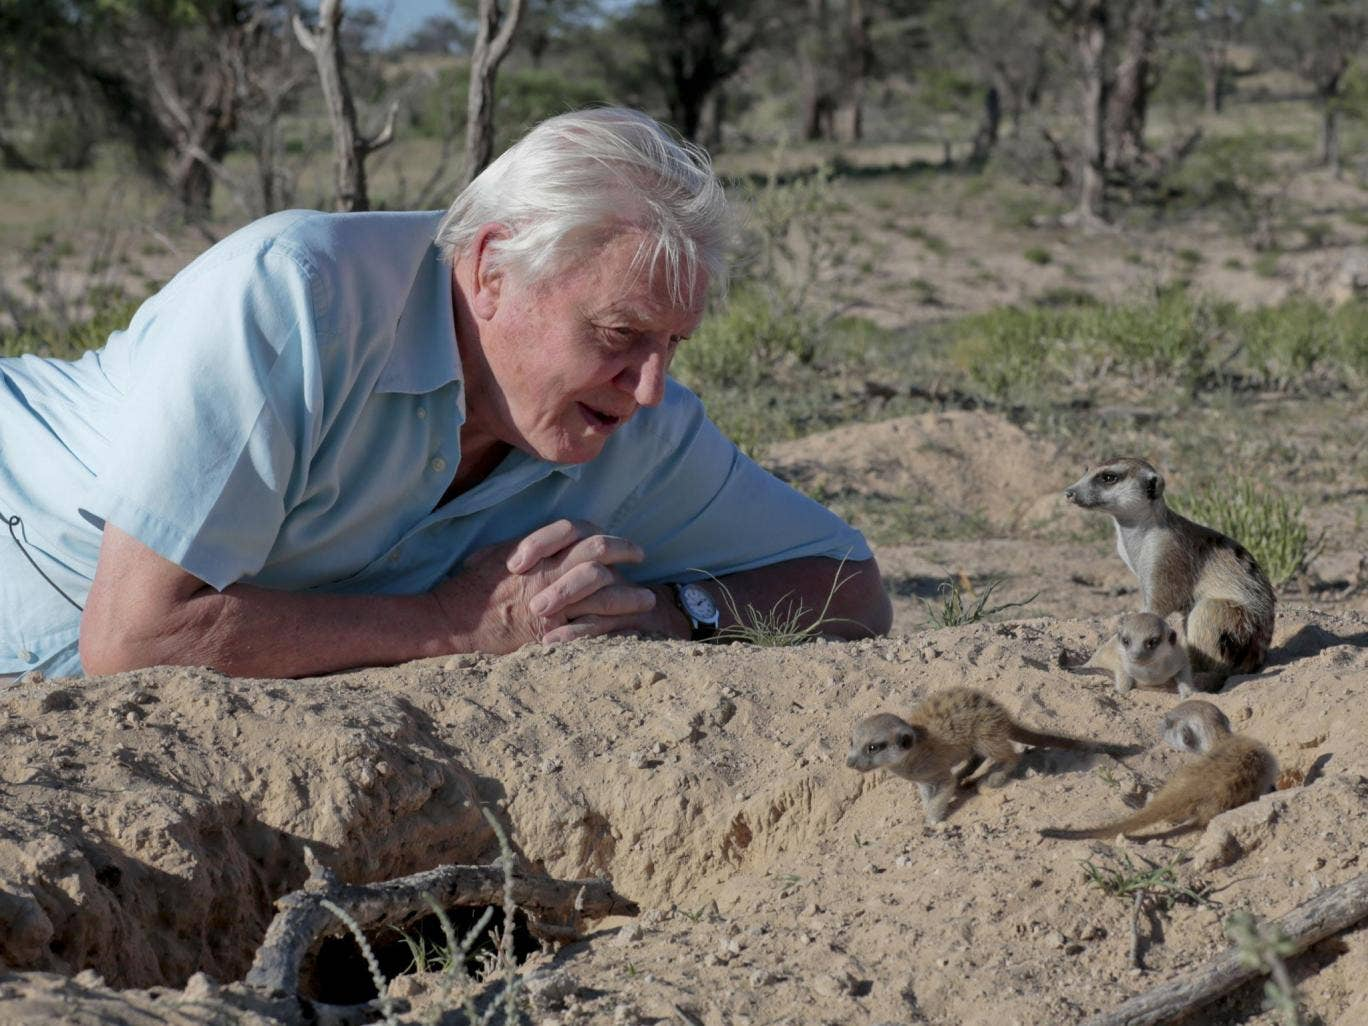 independent.co.uk - Ed Power - How David Attenborough changed television